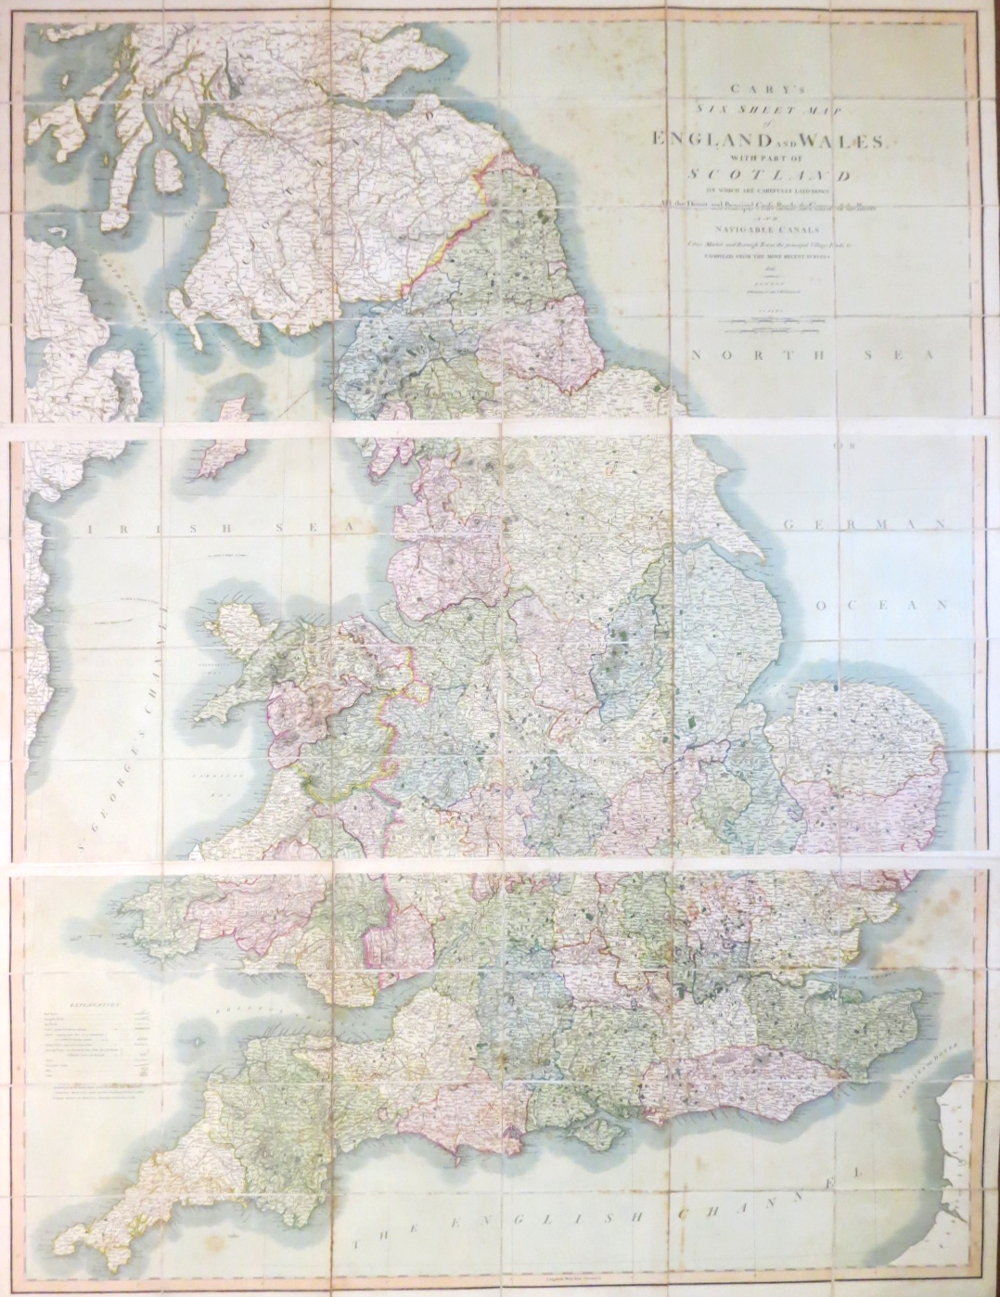 cary s six sheet map of england and wales with part of scotland cary s